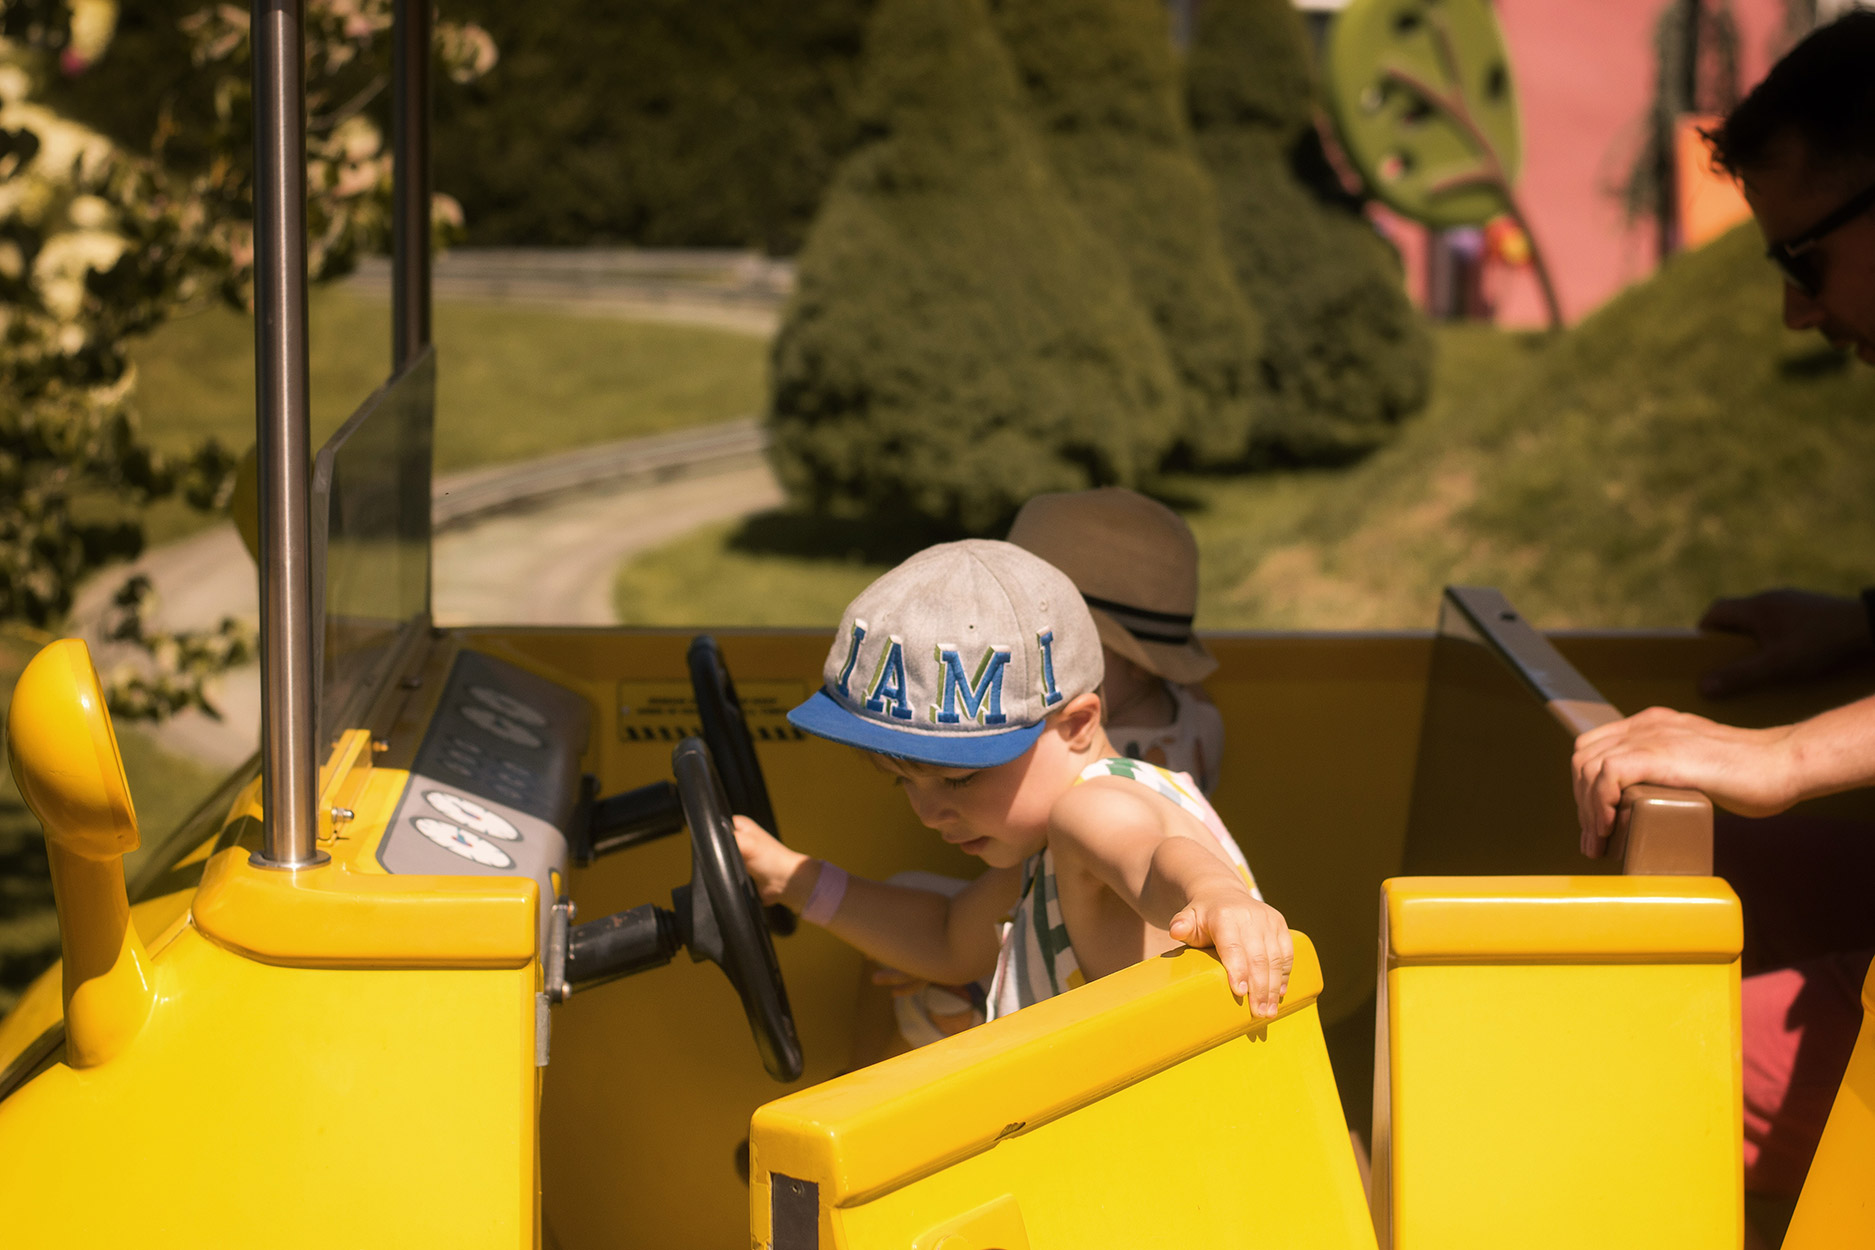 Daddy Pig's Car Ride - A family day out to Peppa Pig World and the Lost Kingdom at Paultons Park, Hampshire